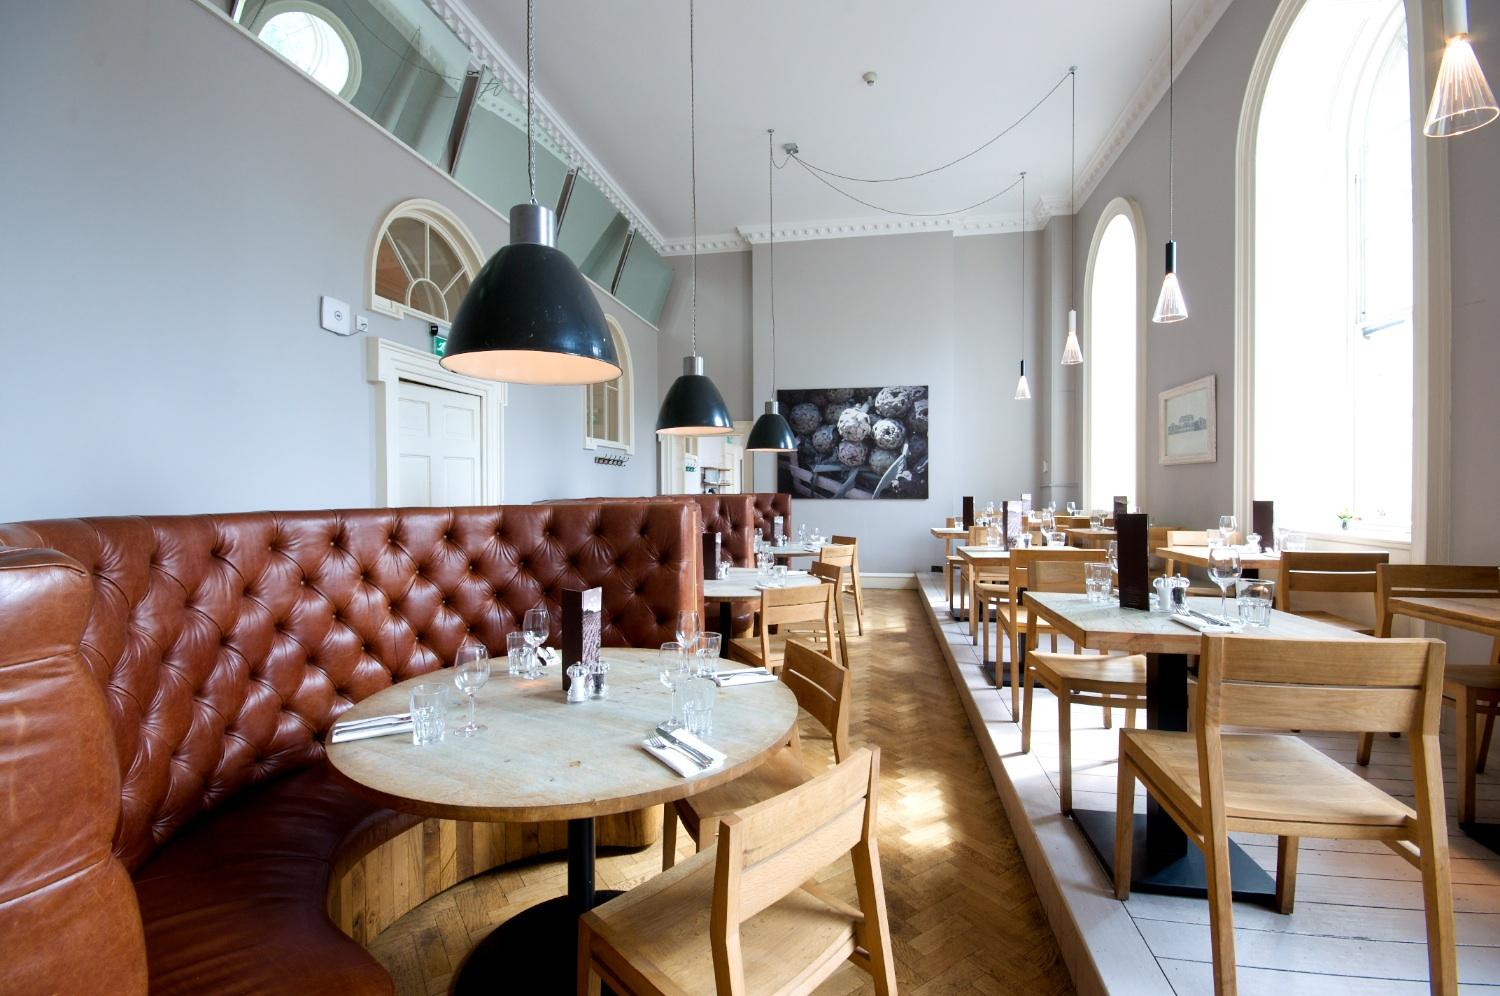 Tom's Kitchen - Somerset House - Somerset